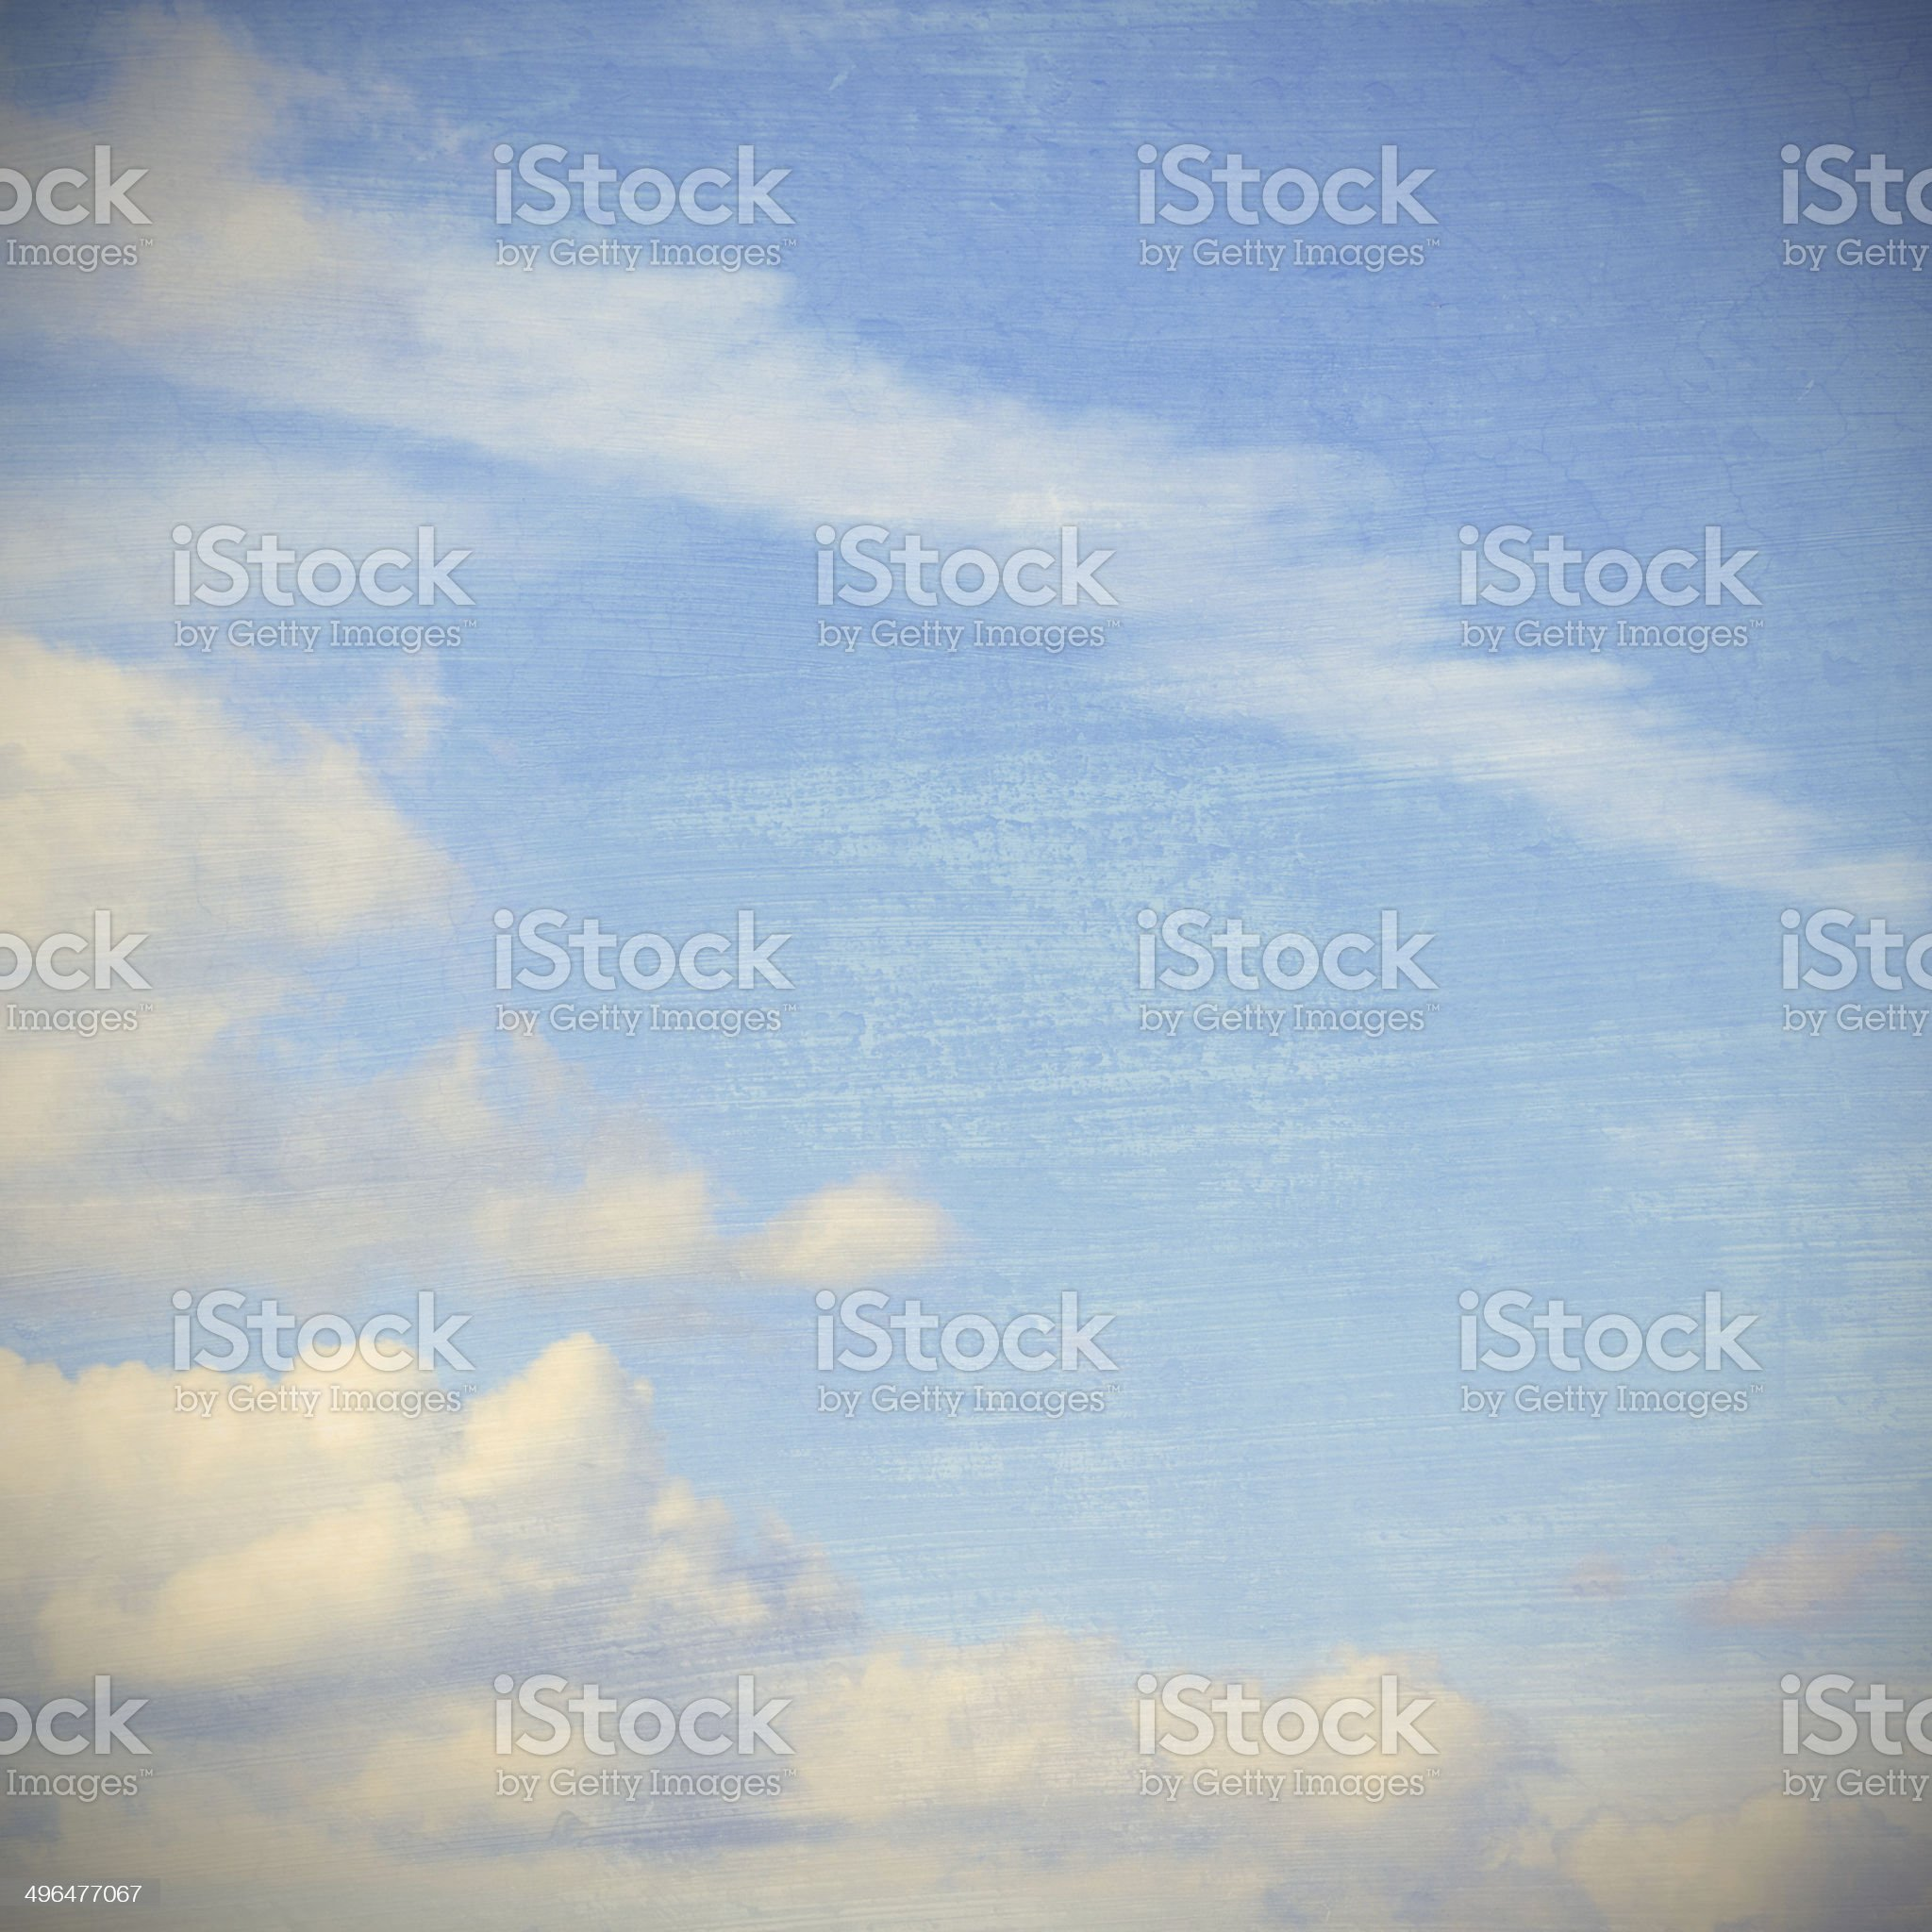 cloudy sky, grunge and vintage image royalty-free stock photo